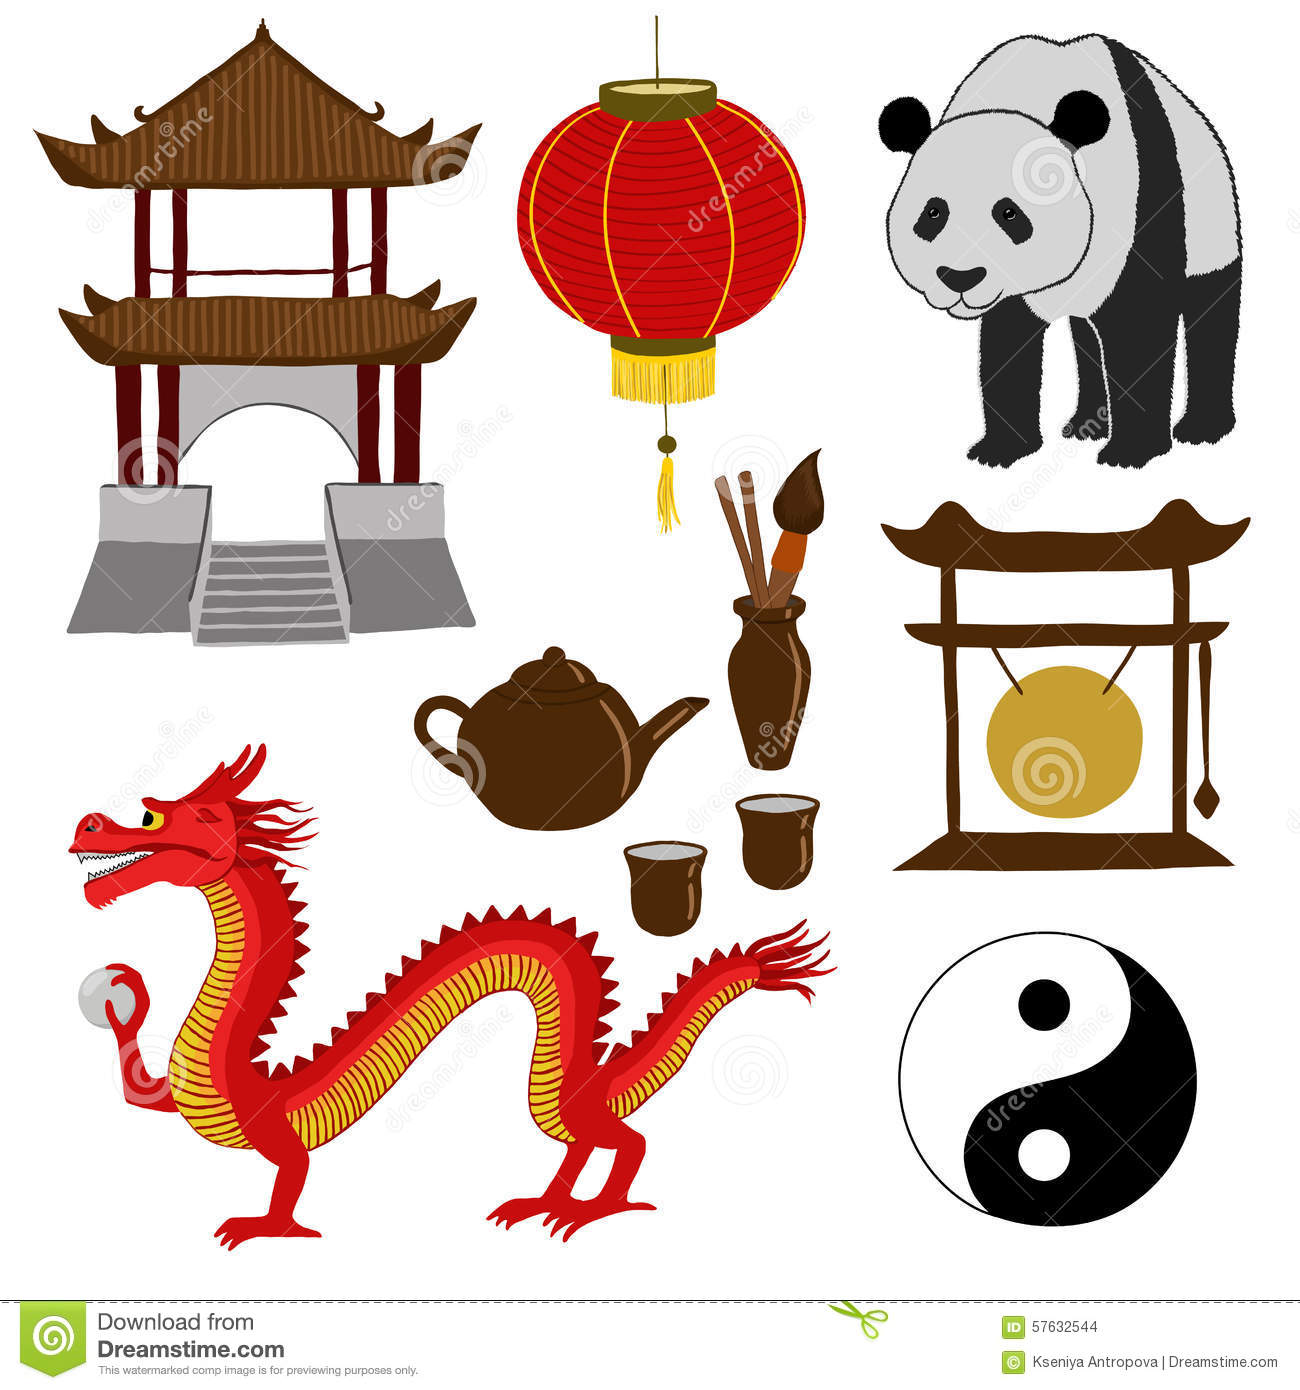 Chinese Symbols Vector Illustration Illustration 57632544 Megapixl